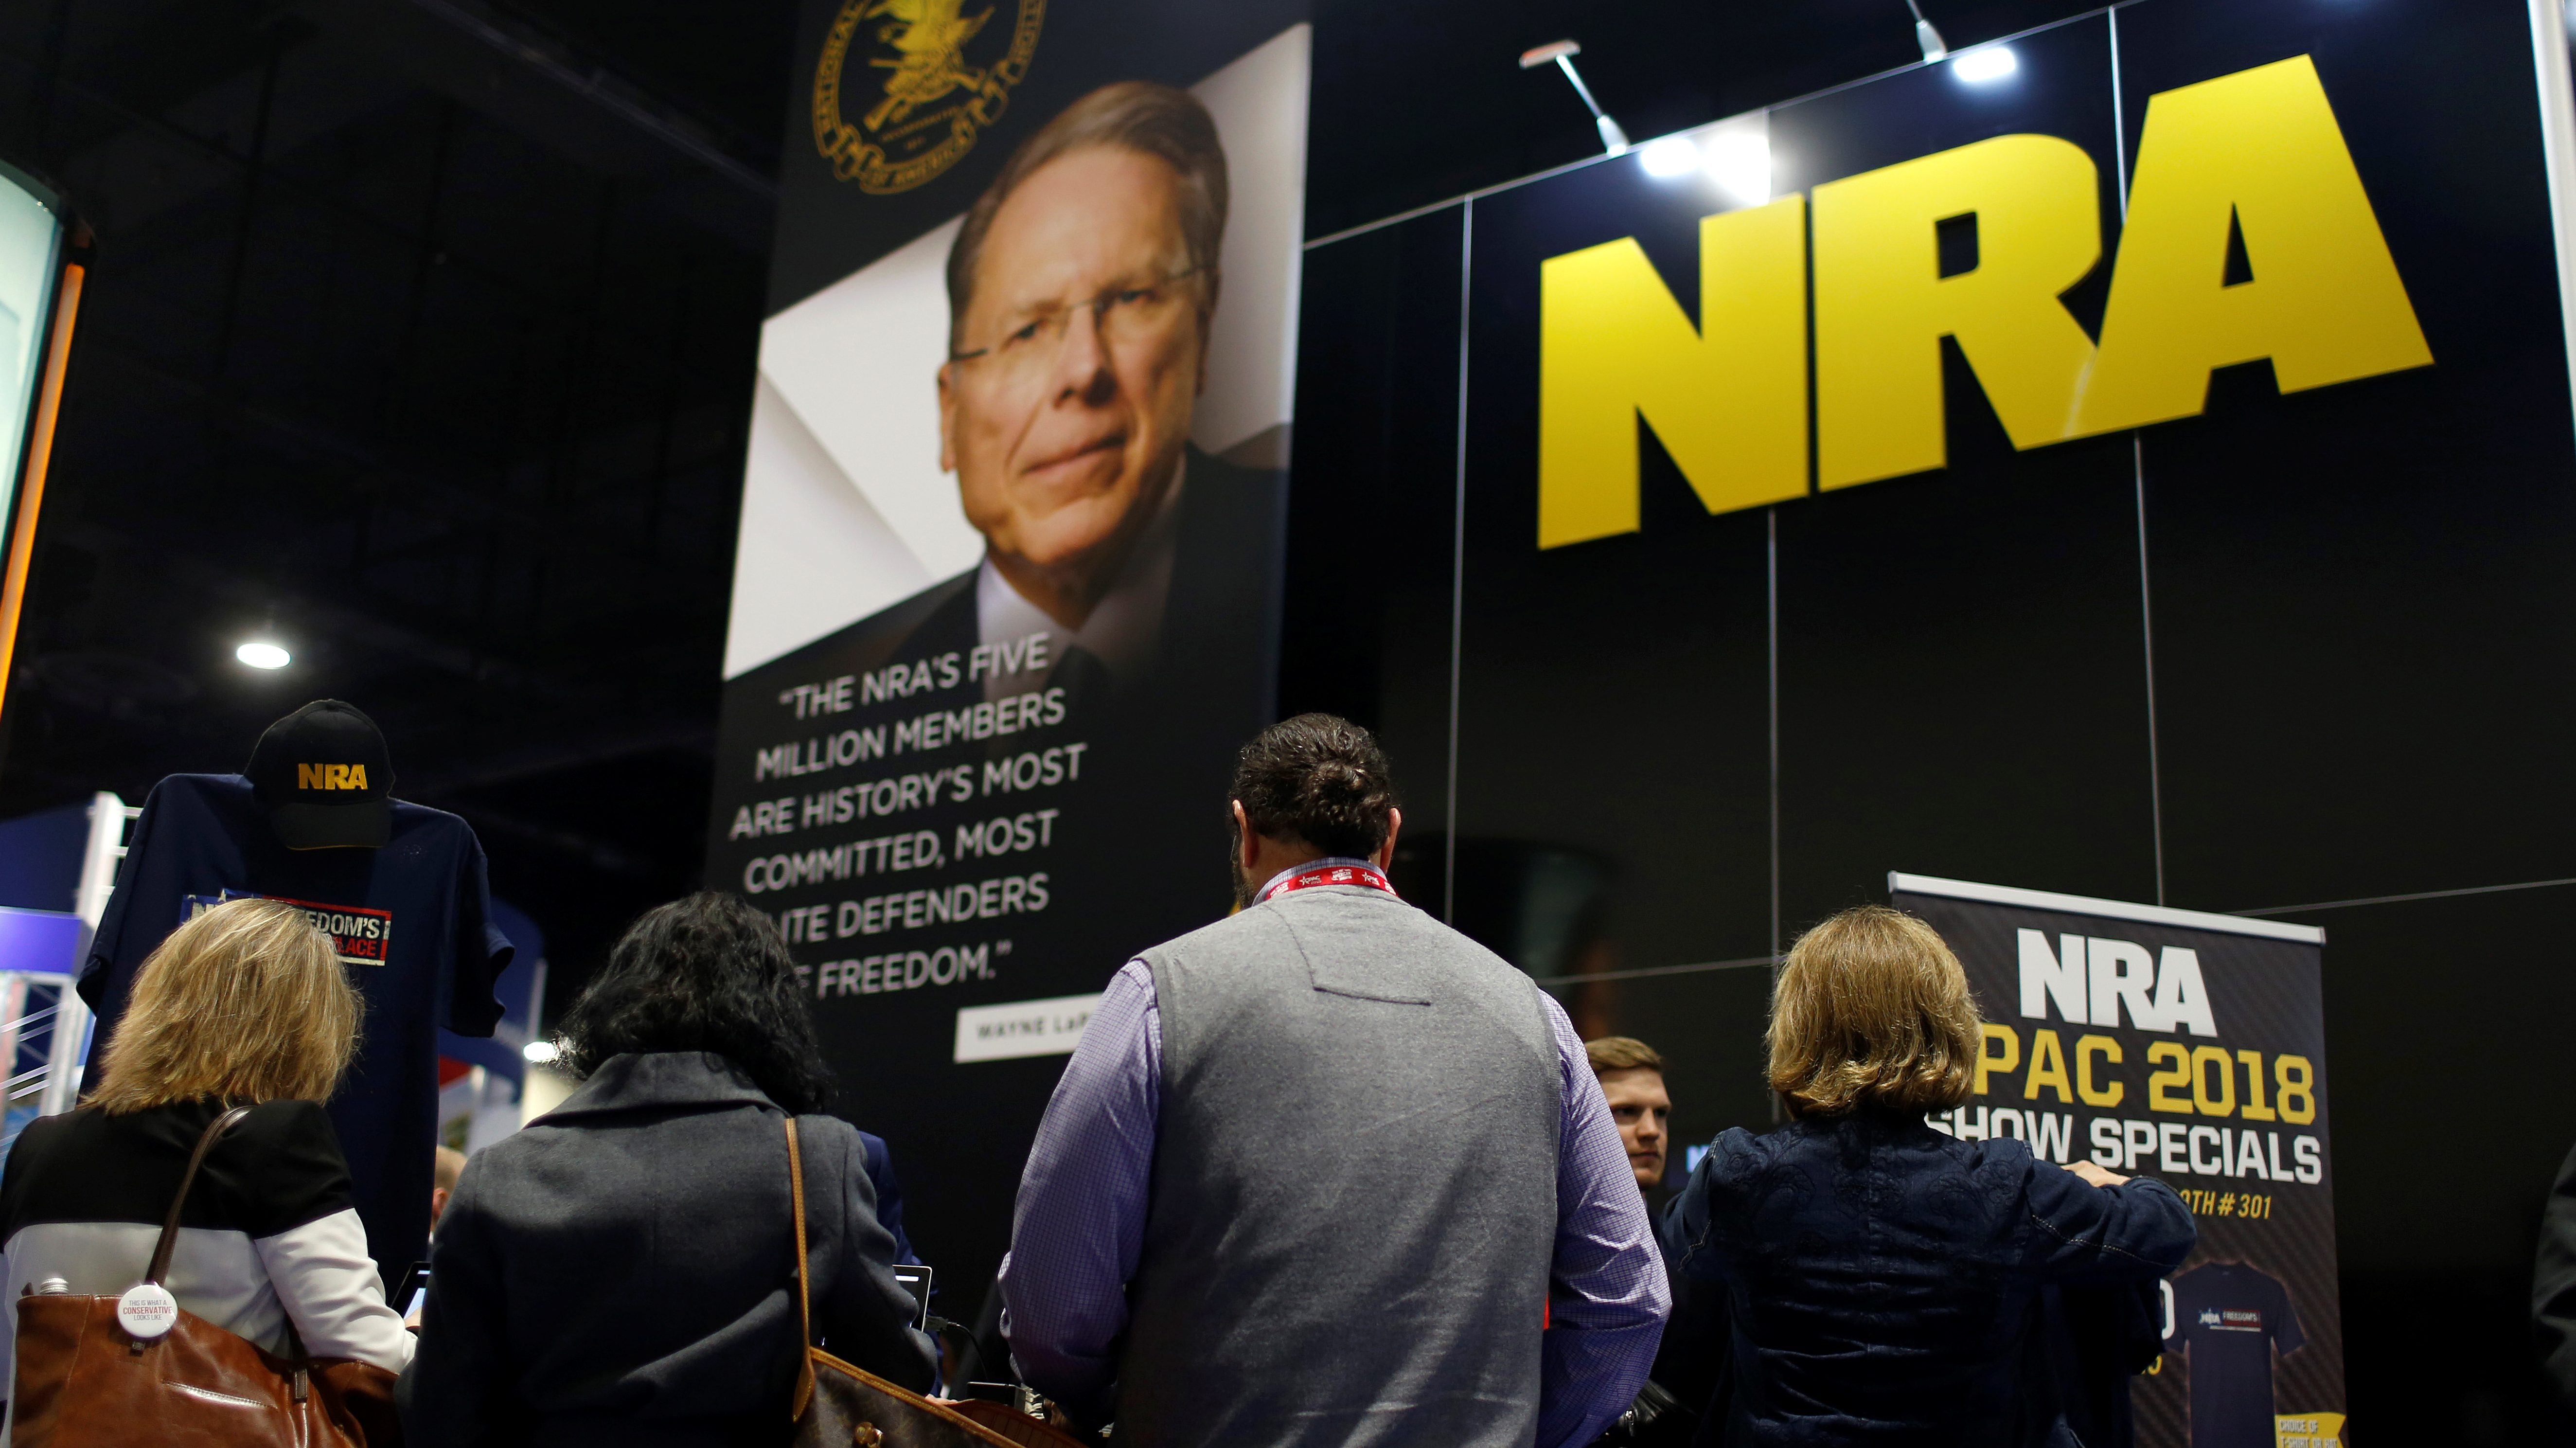 People sign up at the booth for the National Rifle Association (NRA) at the Conservative Political Action Conference (CPAC) at National Harbor, Maryland, U.S., February 23, 2018.      REUTERS/Joshua Roberts - RC1C9A3D0940